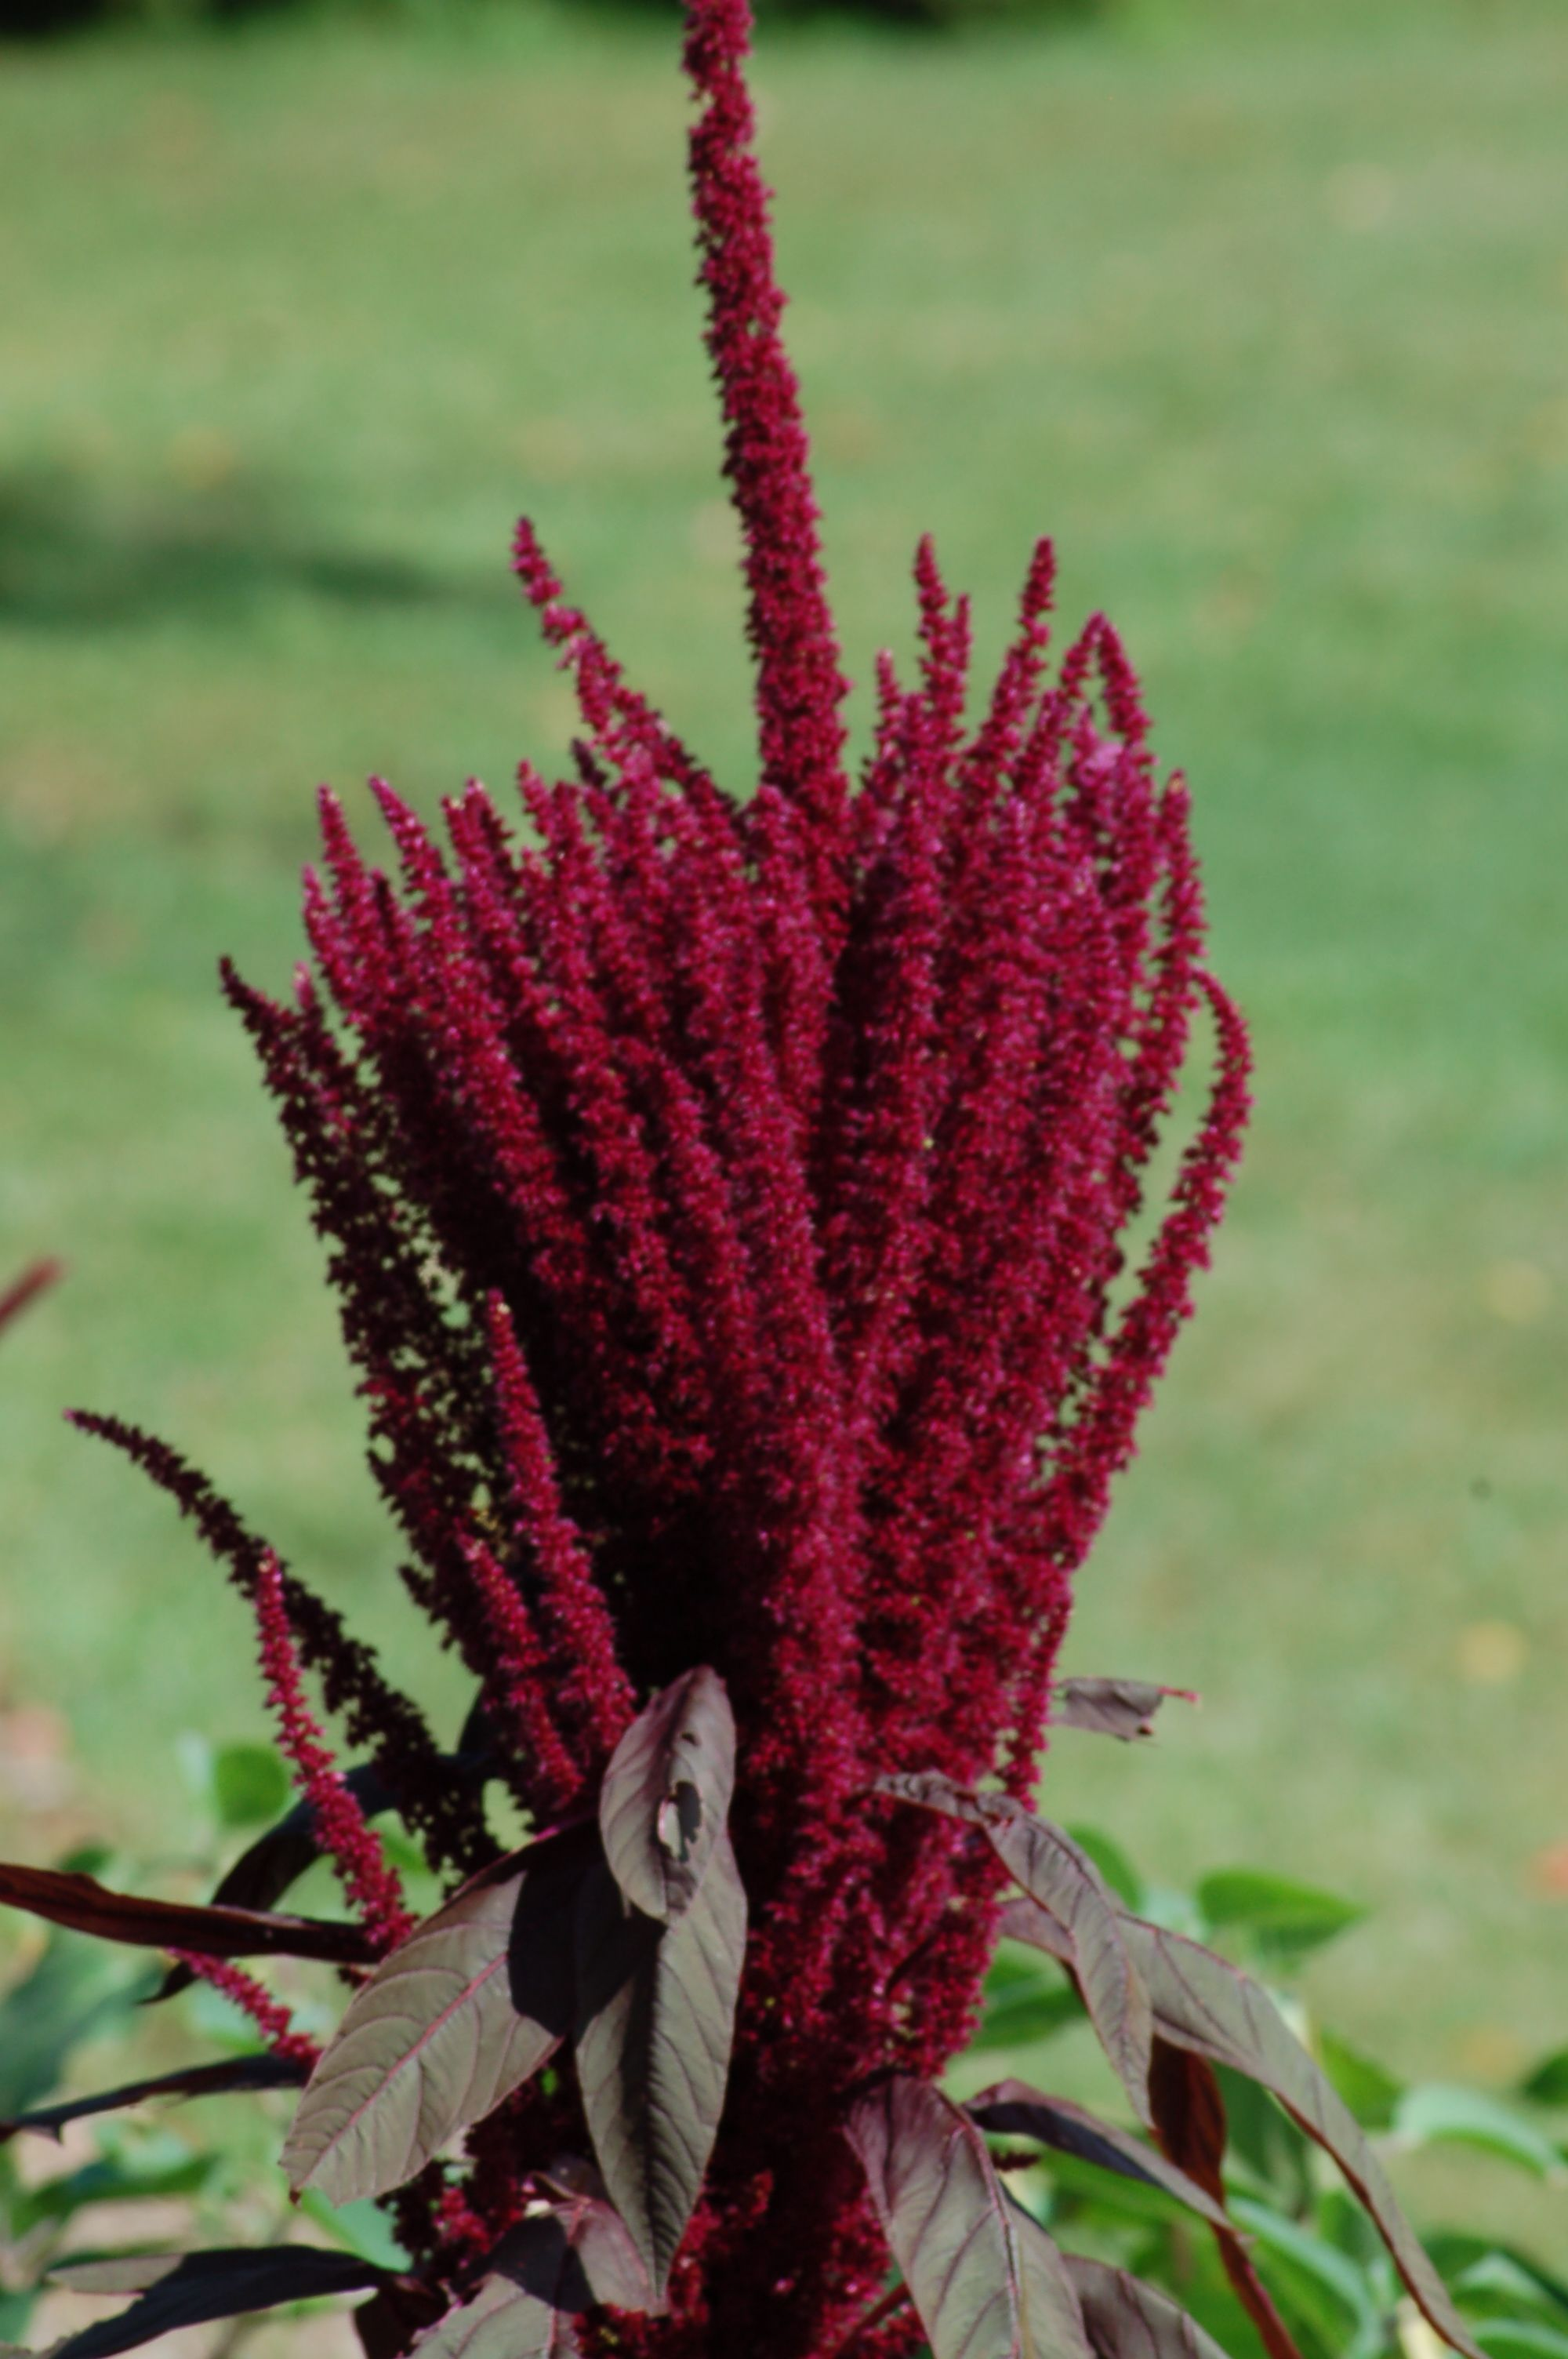 Whats the difference between annual plants and perennials amaranth is an annual plant the long strands of reddish purple flowers on this plant which is also a grain are striking especially since the plant is so izmirmasajfo